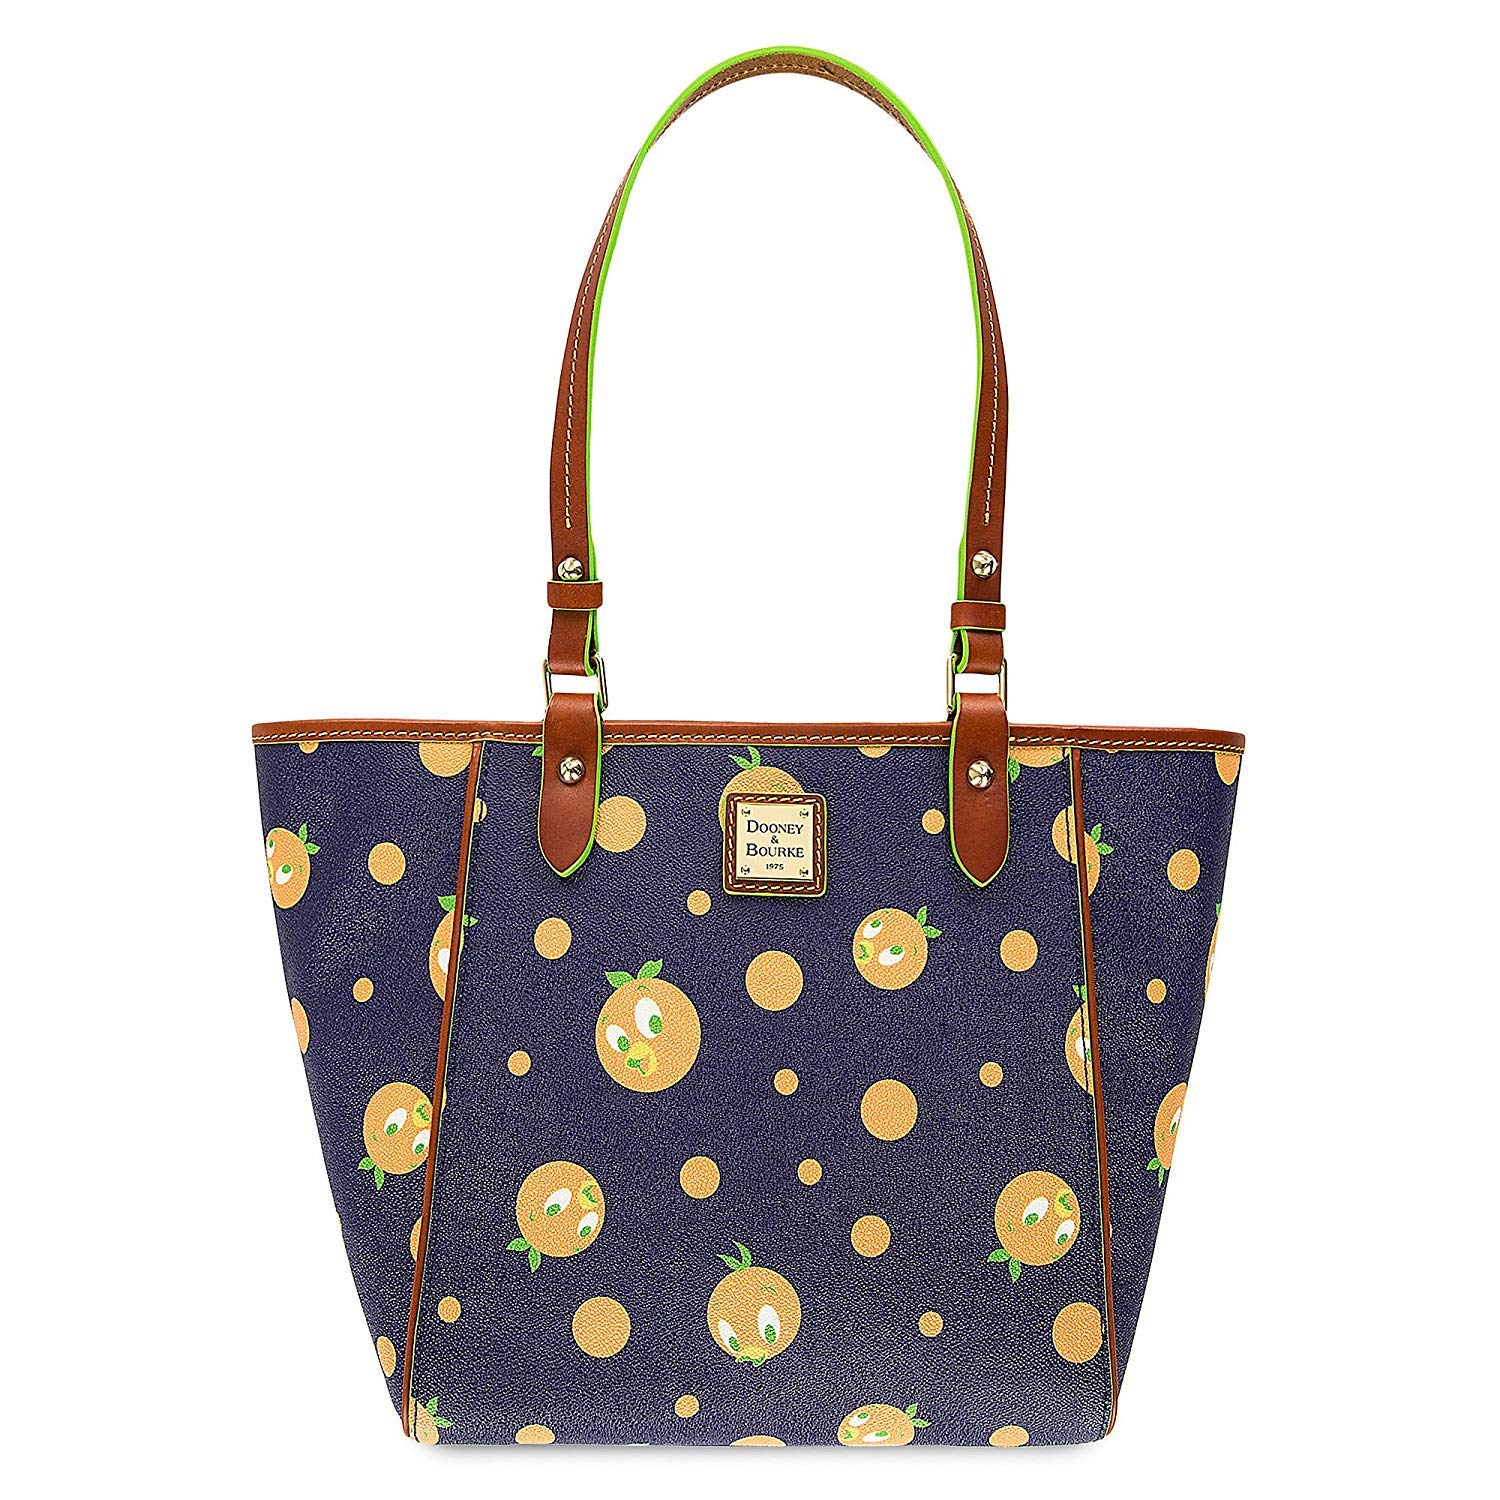 Amazon.com: Disney Orange Bird Janie Tote Purse by Dooney & Bourke: Shoes